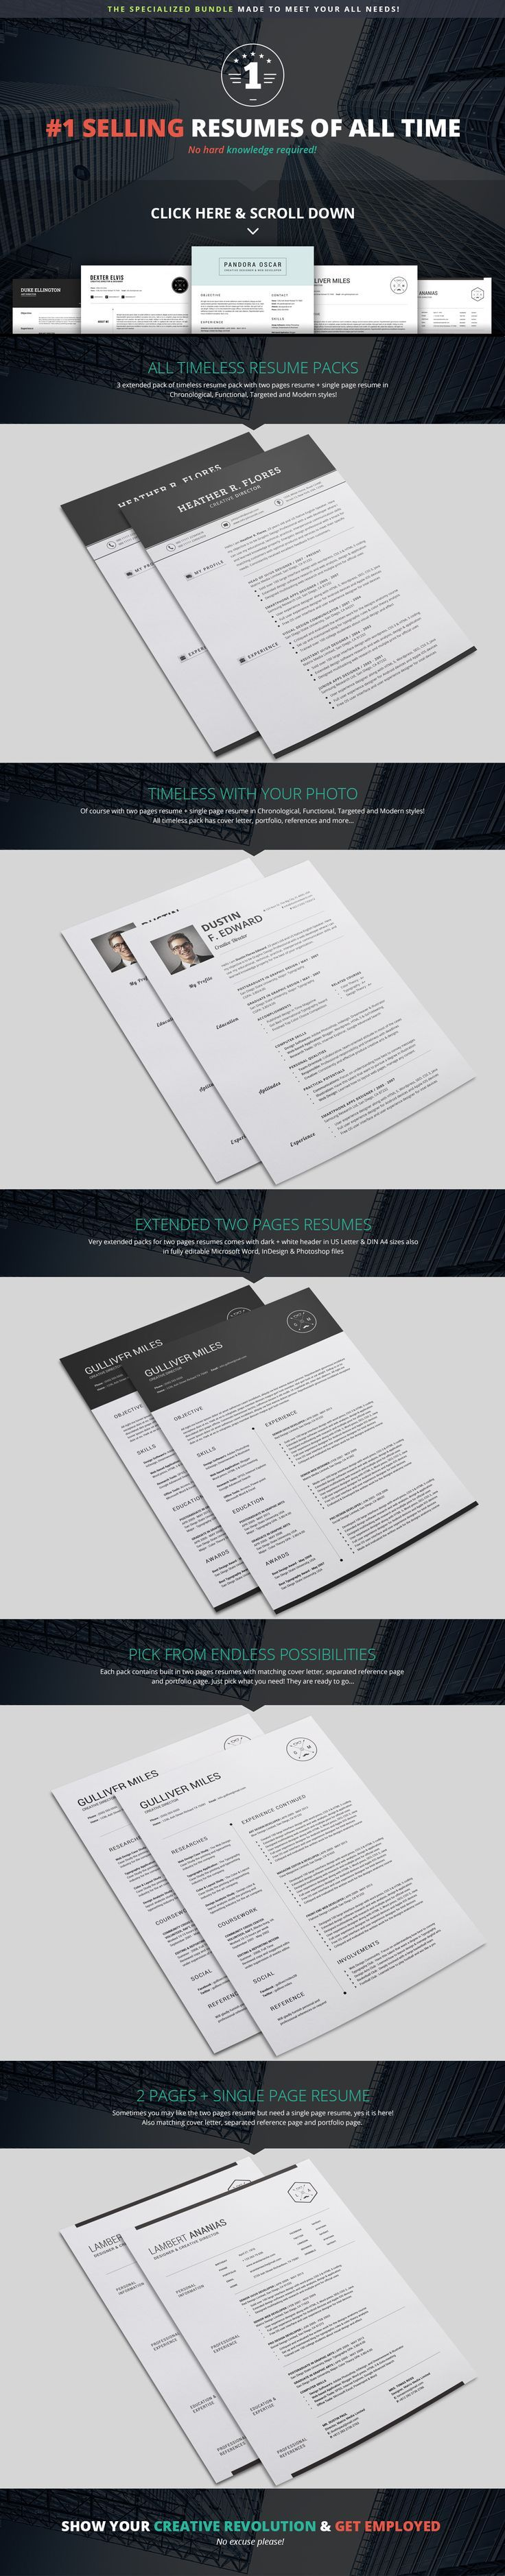 The best resumes at best price is here, you will get all types of ...